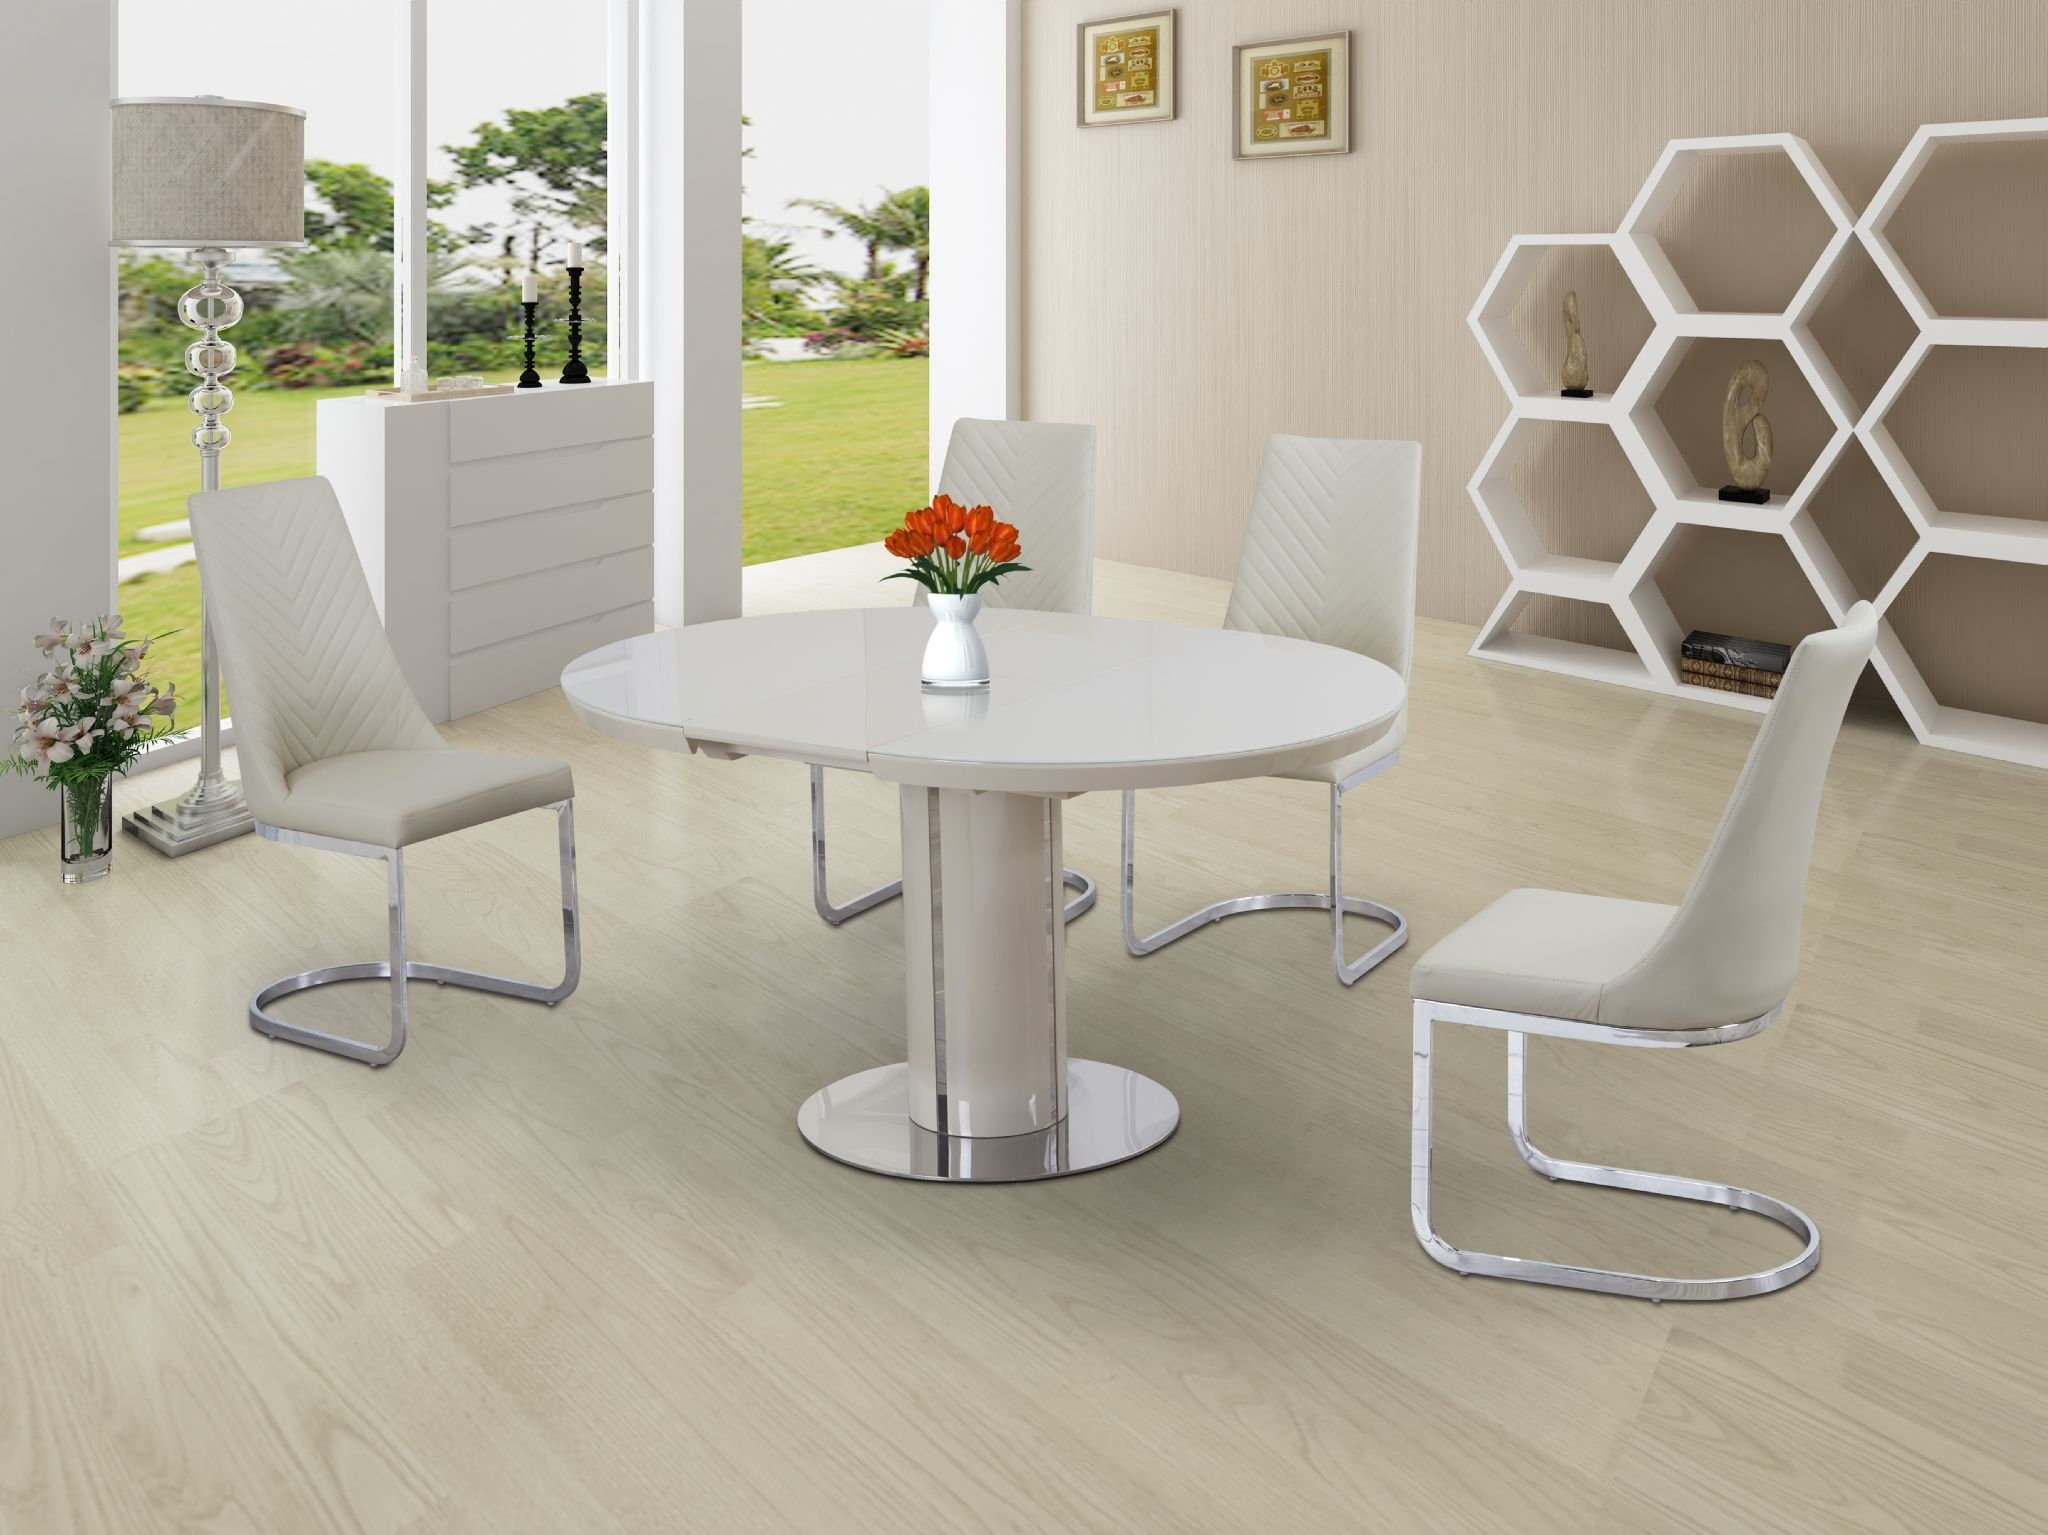 Most Current Eclipse Round / Oval Gloss & Glass Extending 110 To 145 Cm Dining Table –  Cream In Glass Extending Dining Tables (View 17 of 25)